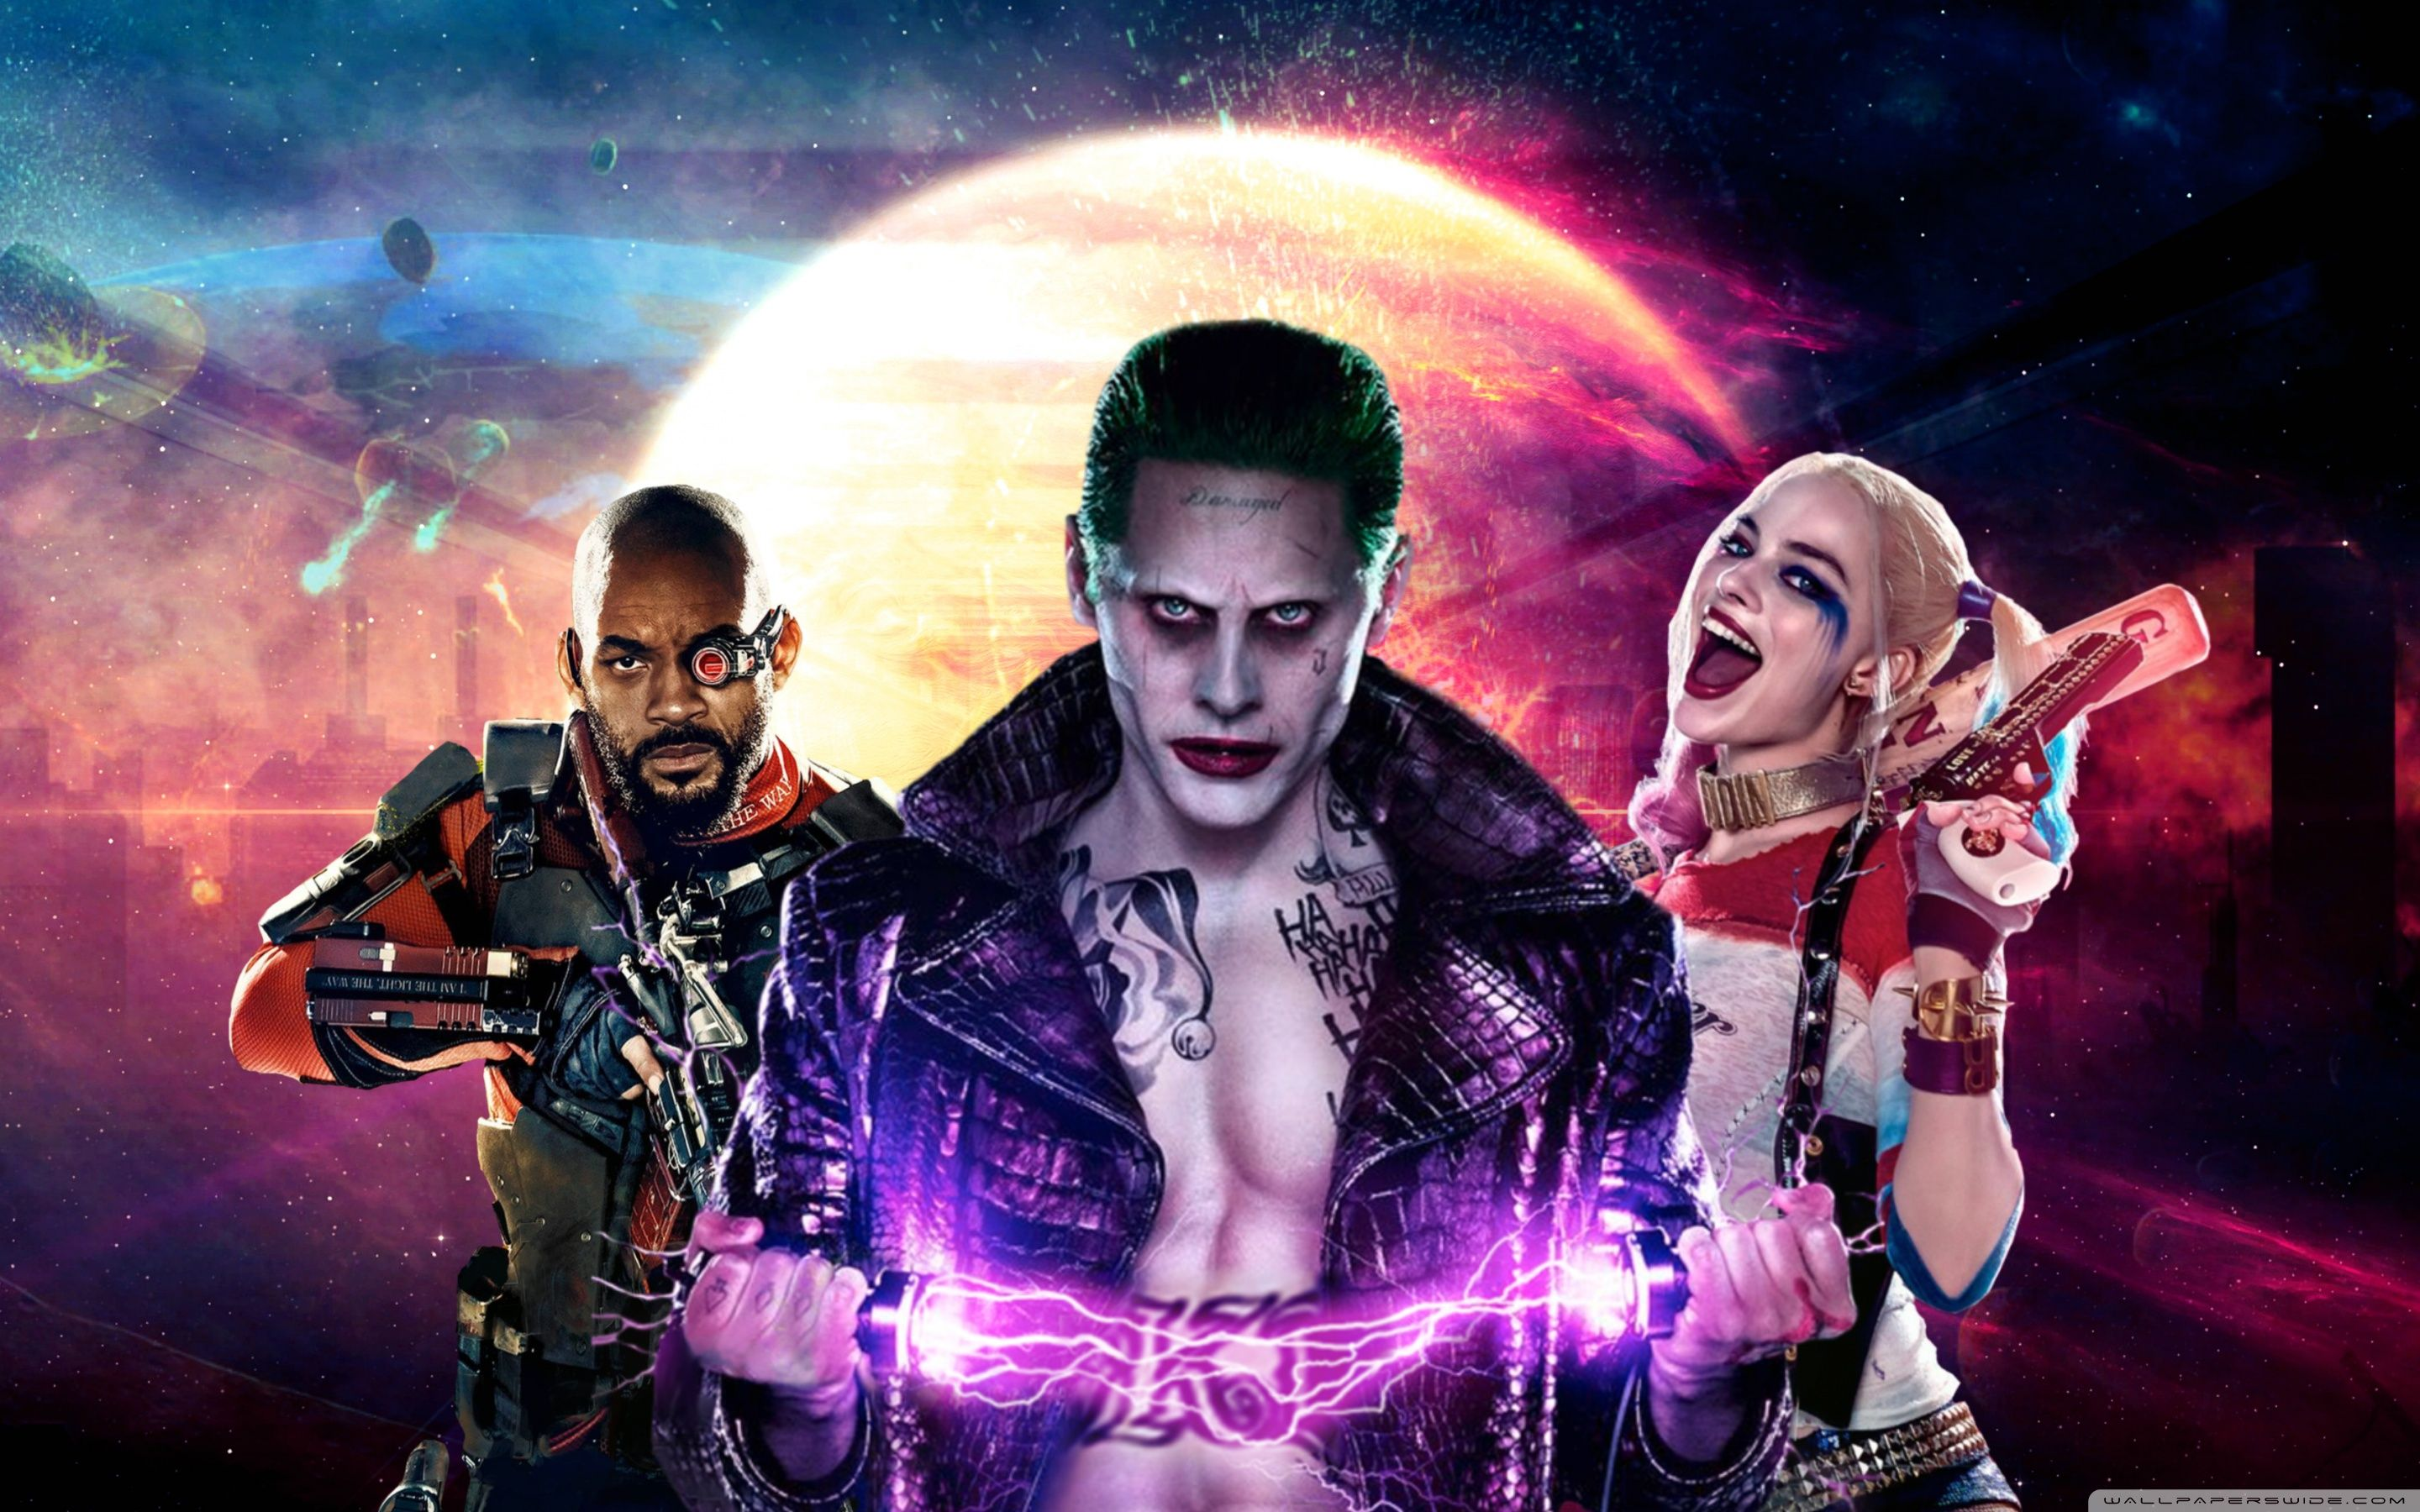 Recce Squad Hd Wallpapers: Suicide Squad 4K Wallpapers